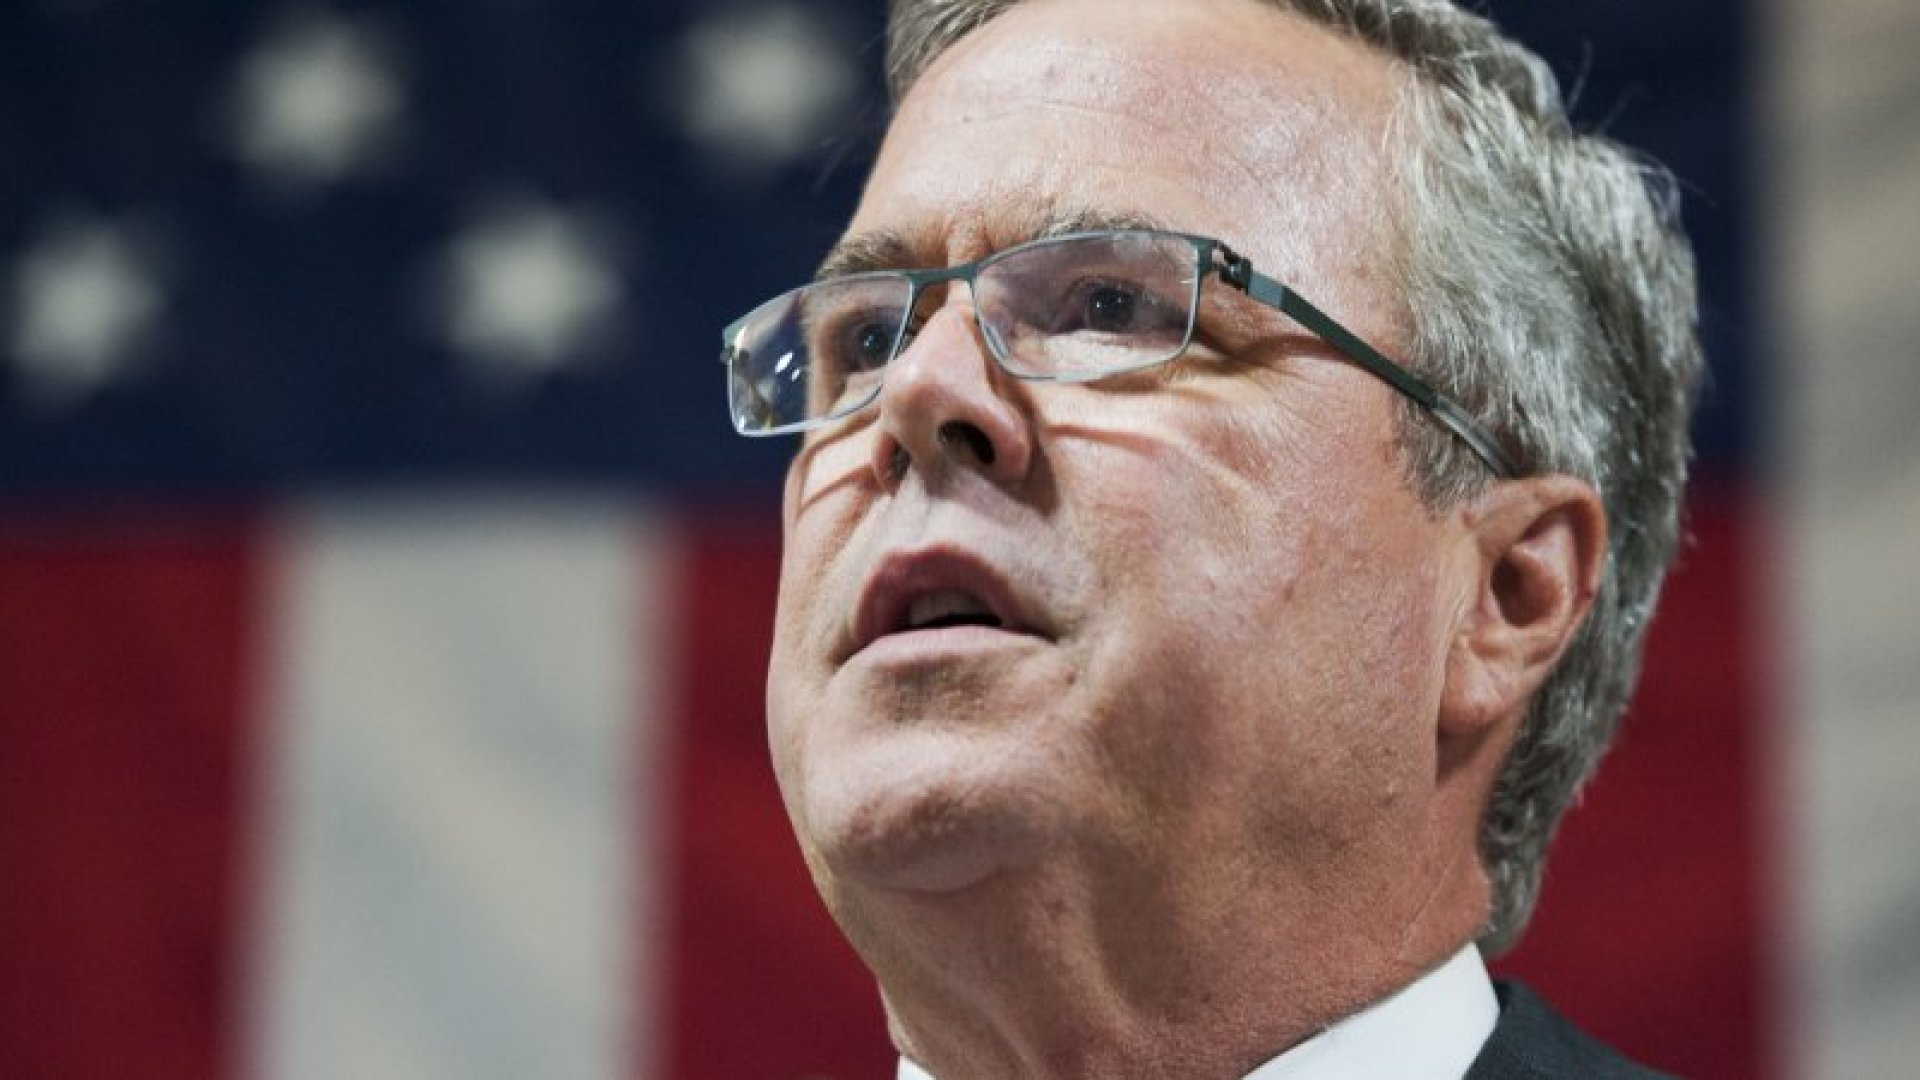 Jeb Bush Touting Conservative Policies to Help Middle Class